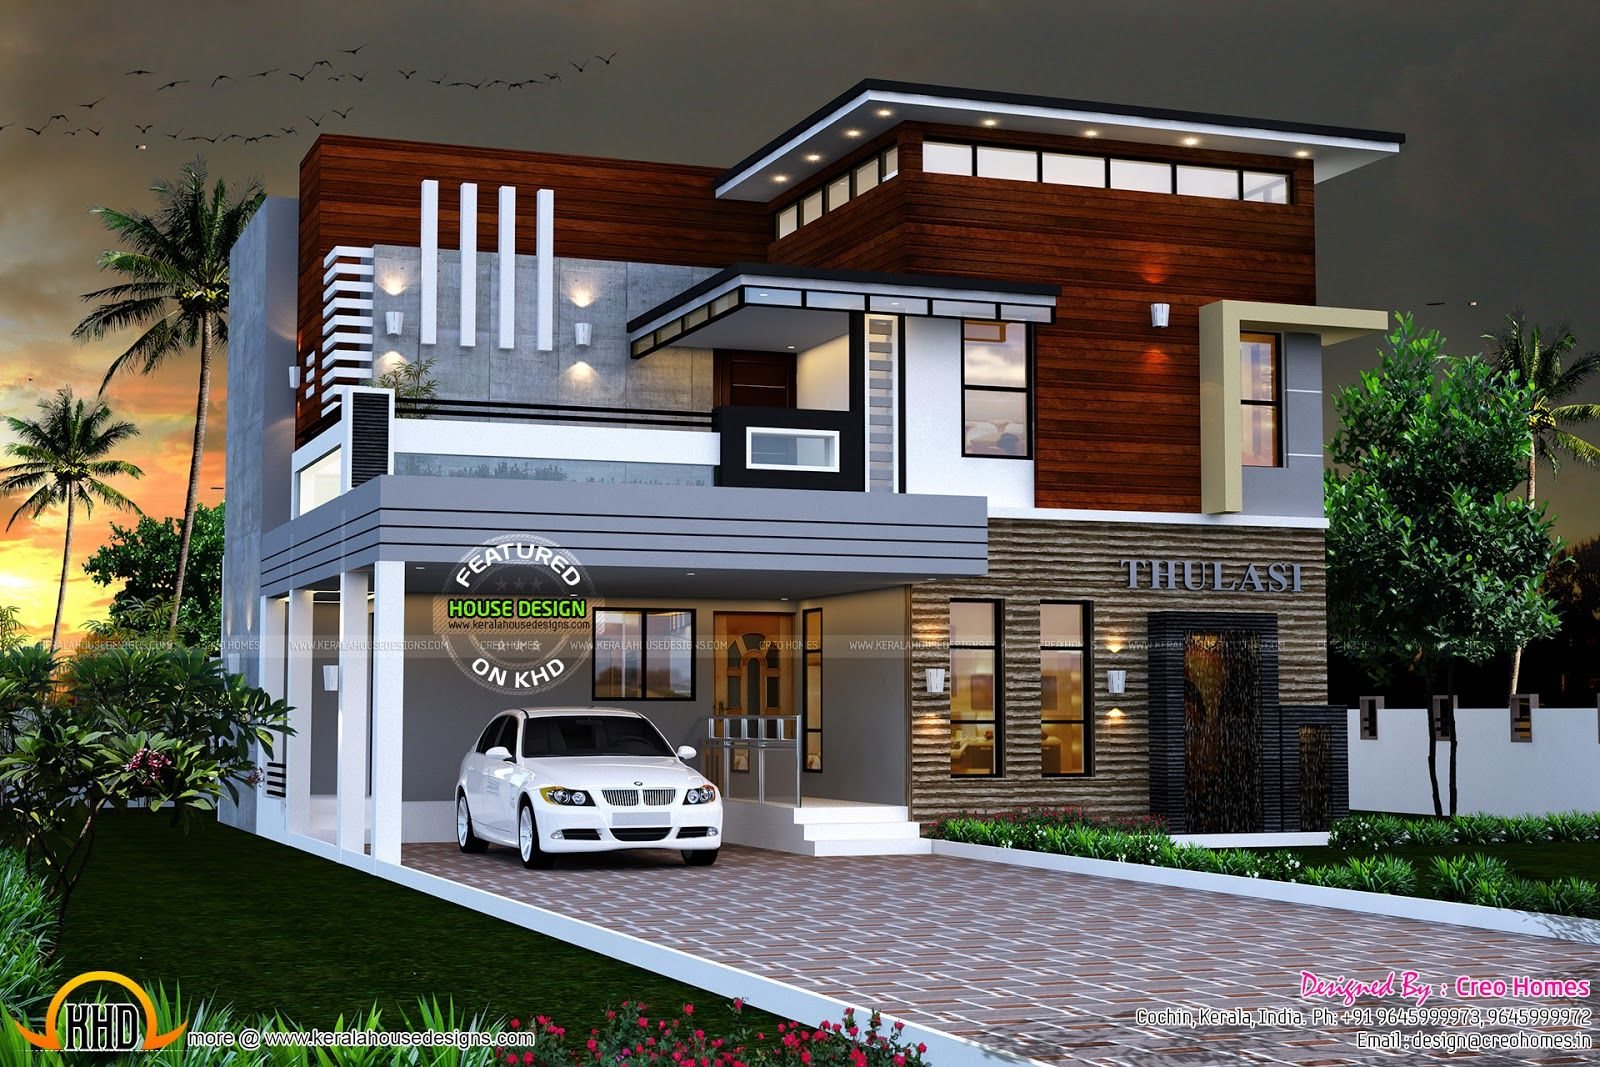 Eterior design modern small house architecture building plan home design kerala house plans home Modern residential house plans